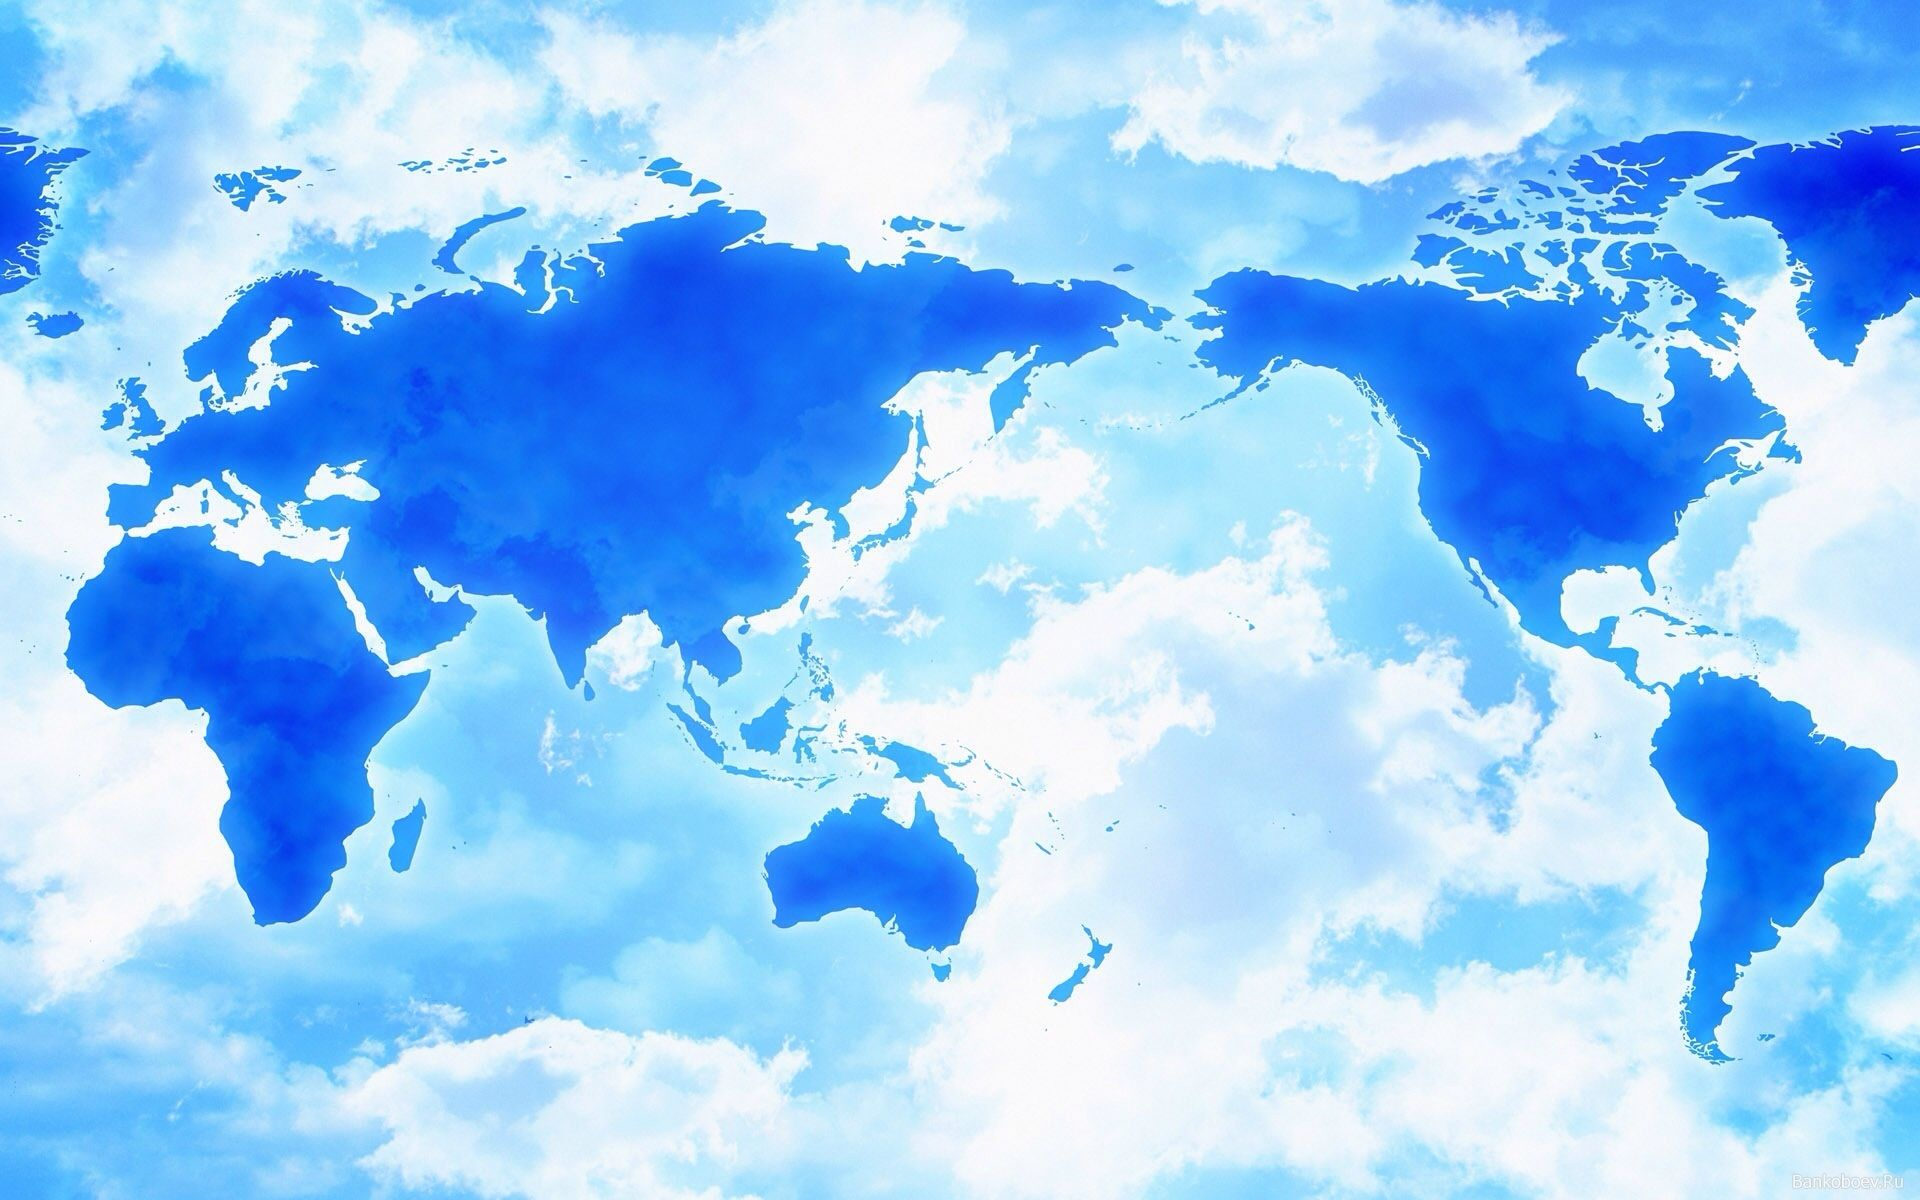 Europe is not in the center pacific ocean is world maps world map blue wallpapers resolution filesize mb added on march tagged world map gumiabroncs Choice Image